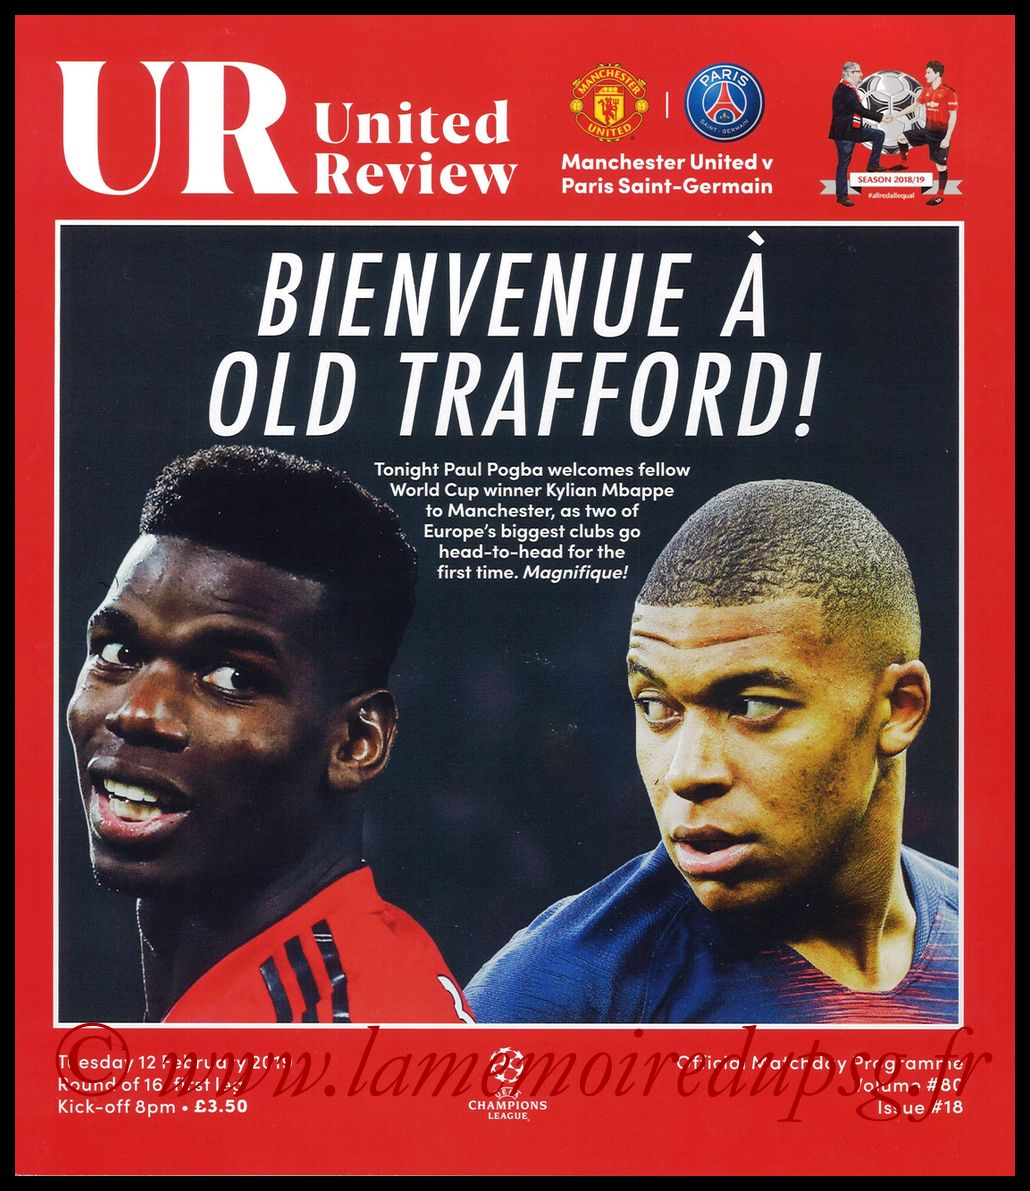 2019-02-12  Manchester United-PSG (8ème Finale C1 Aller, United Review N° 80)